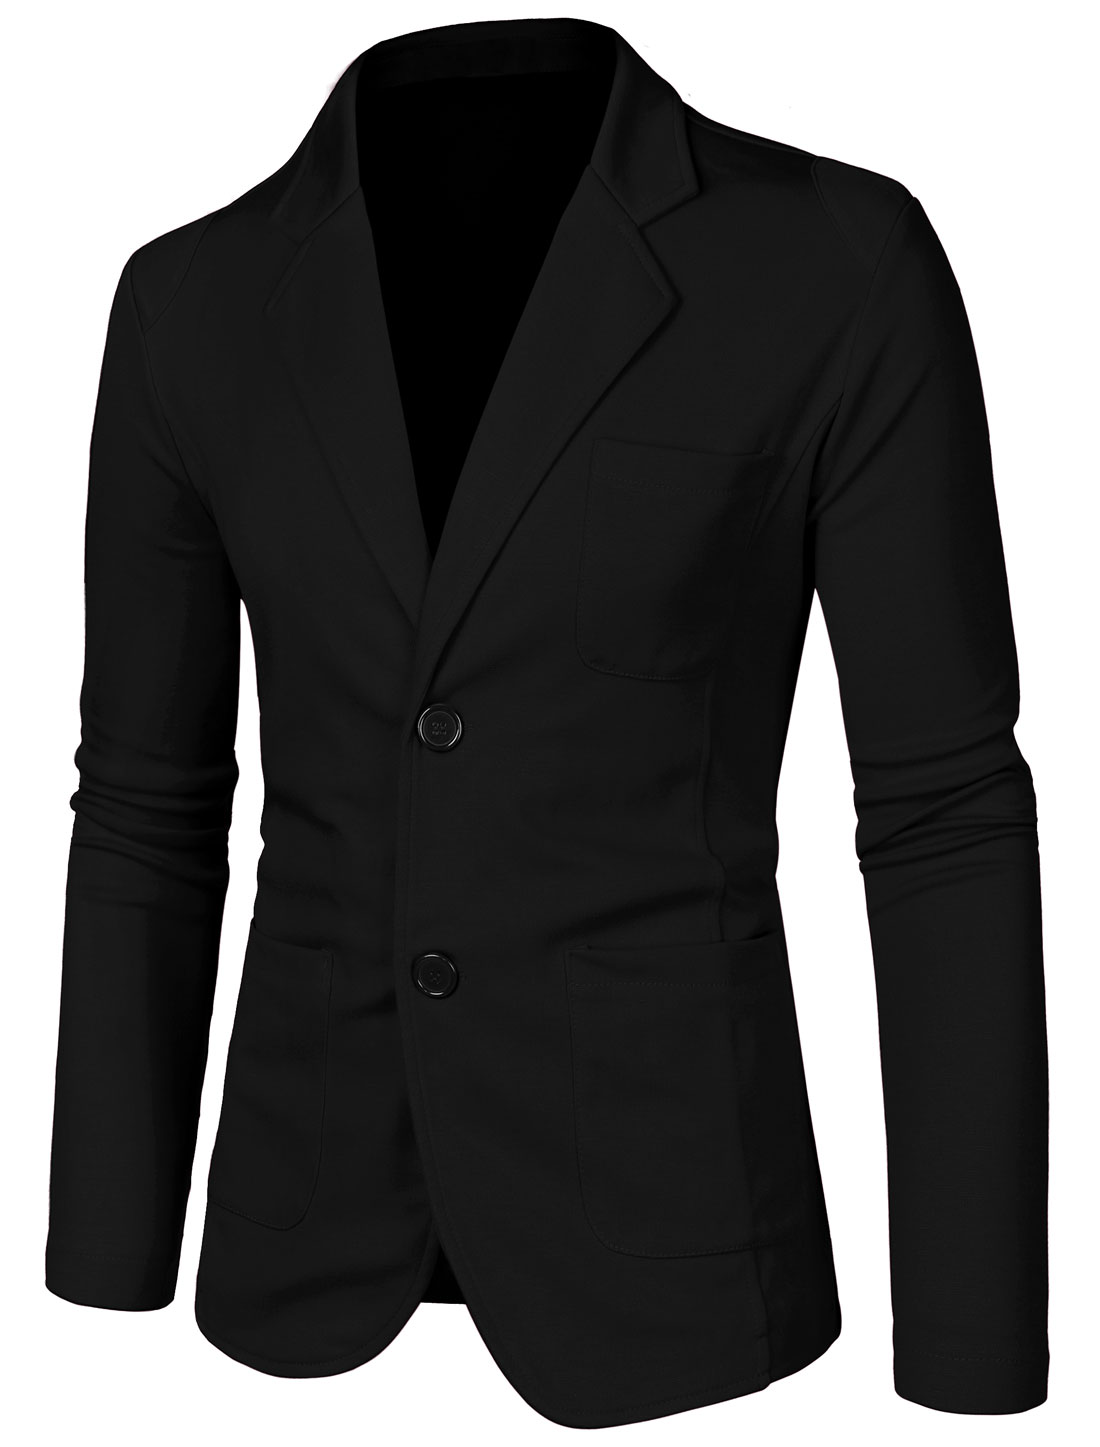 Men Notched Lapel One Chest Pocket Trendy Thin Blazer Black S